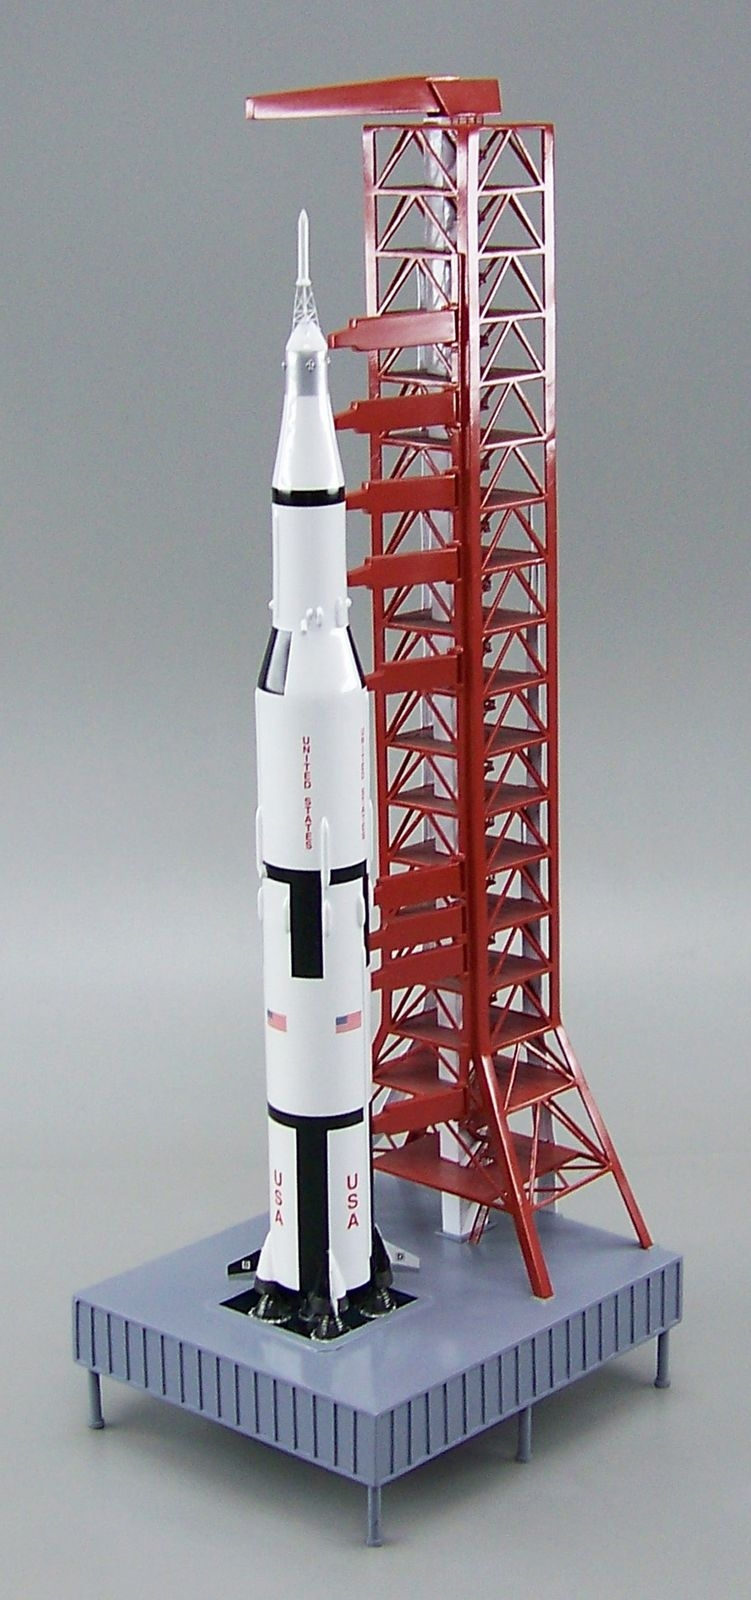 saturn_v_launch_tower.jpg